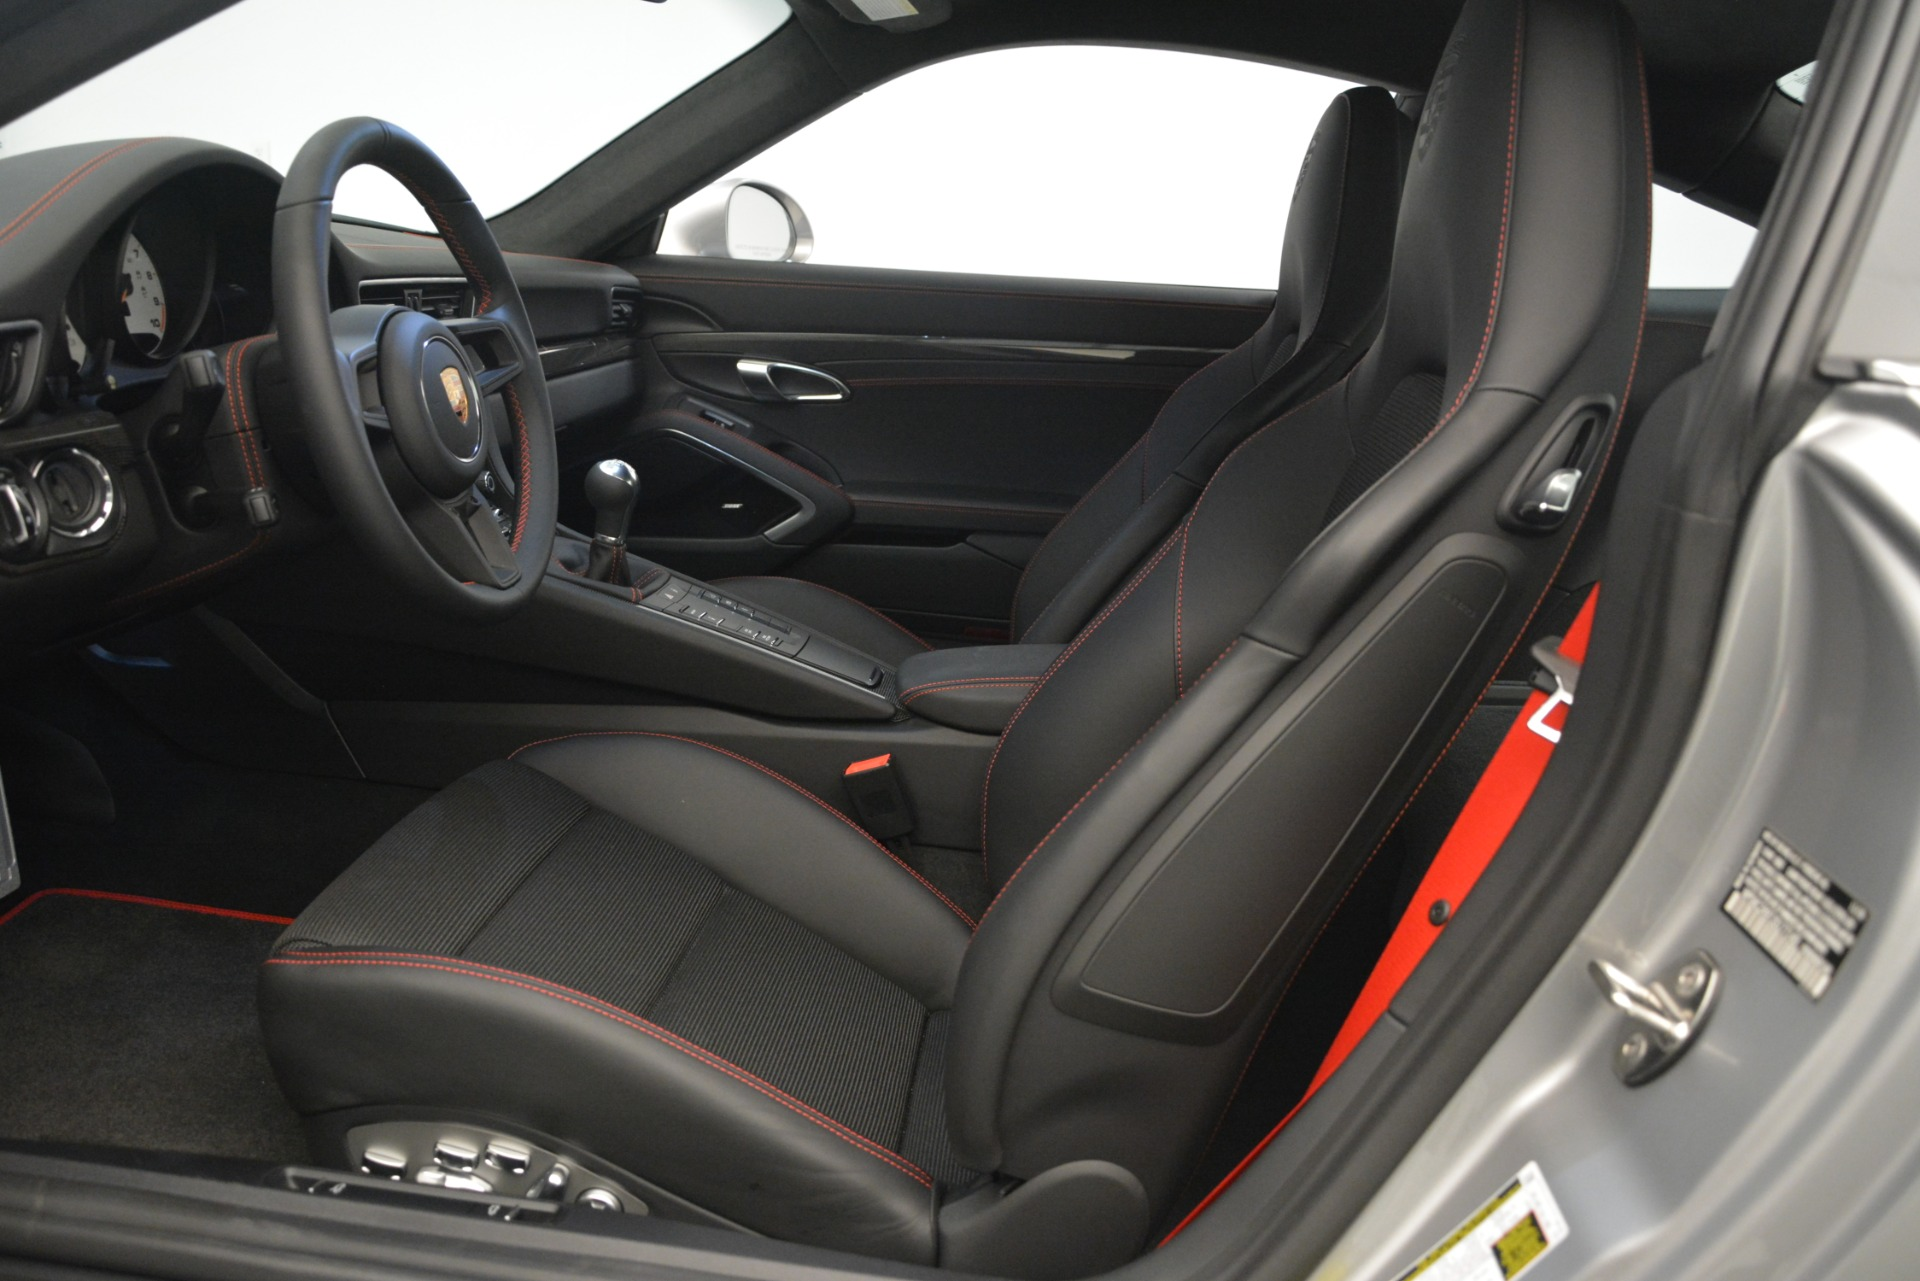 Used 2018 Porsche 911 GT3 For Sale In Greenwich, CT 3255_p14